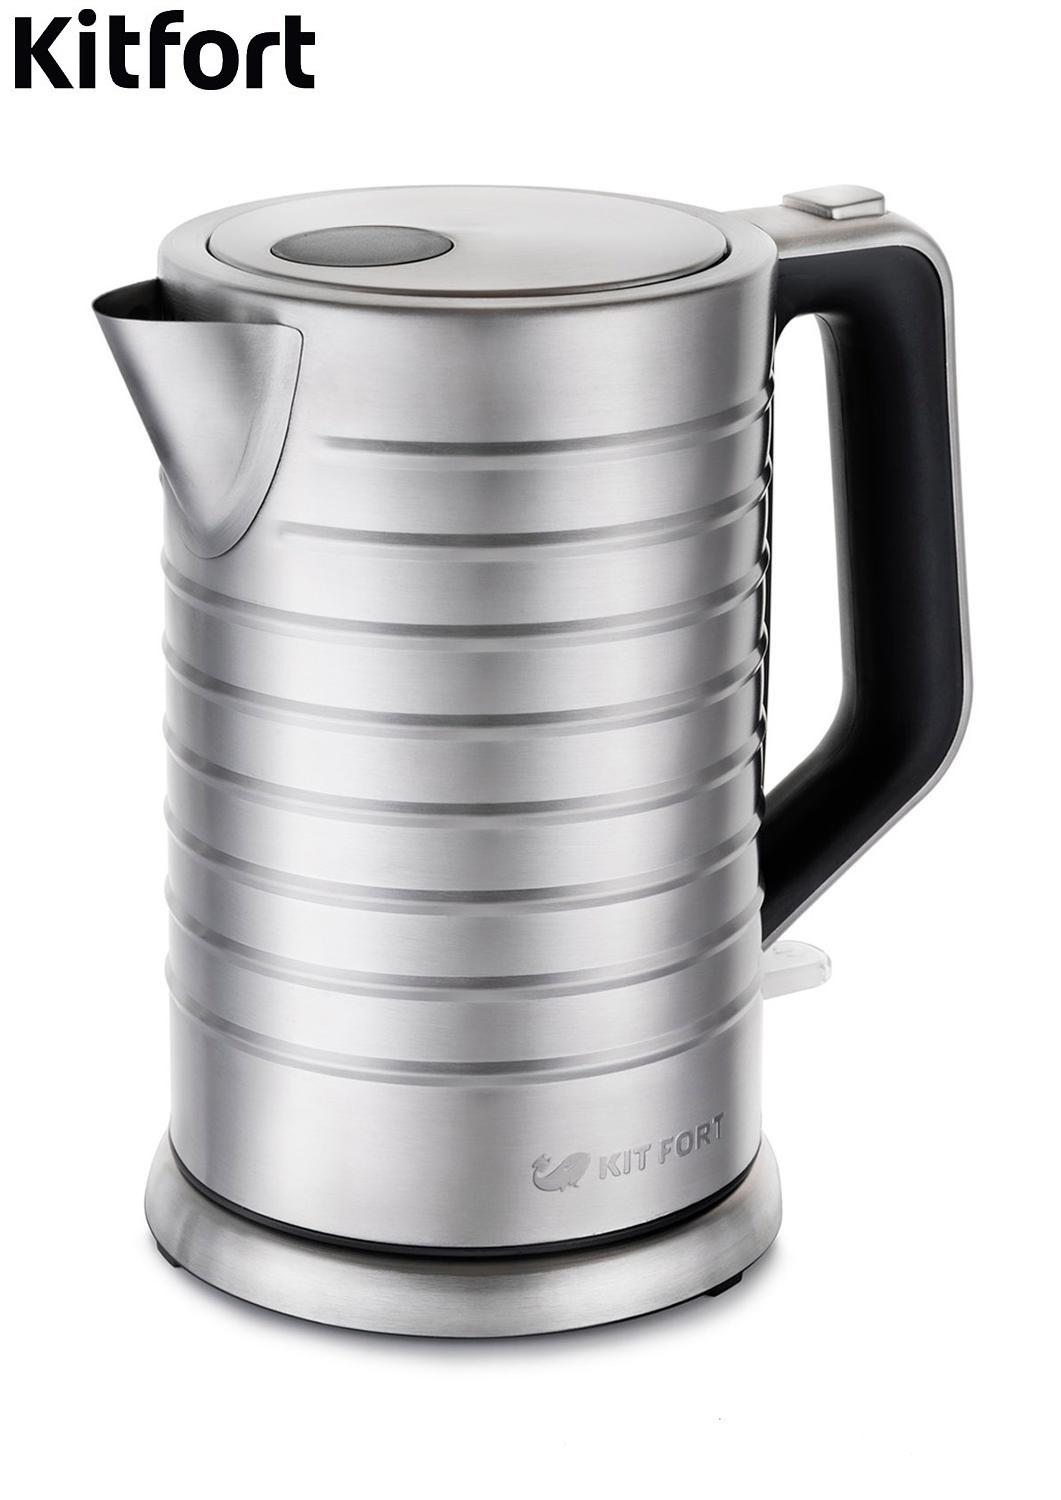 Electric Kettle Kitfort KT-627 Kettle Electric Electric kettles home kitchen appliances kettle make tea Thermo